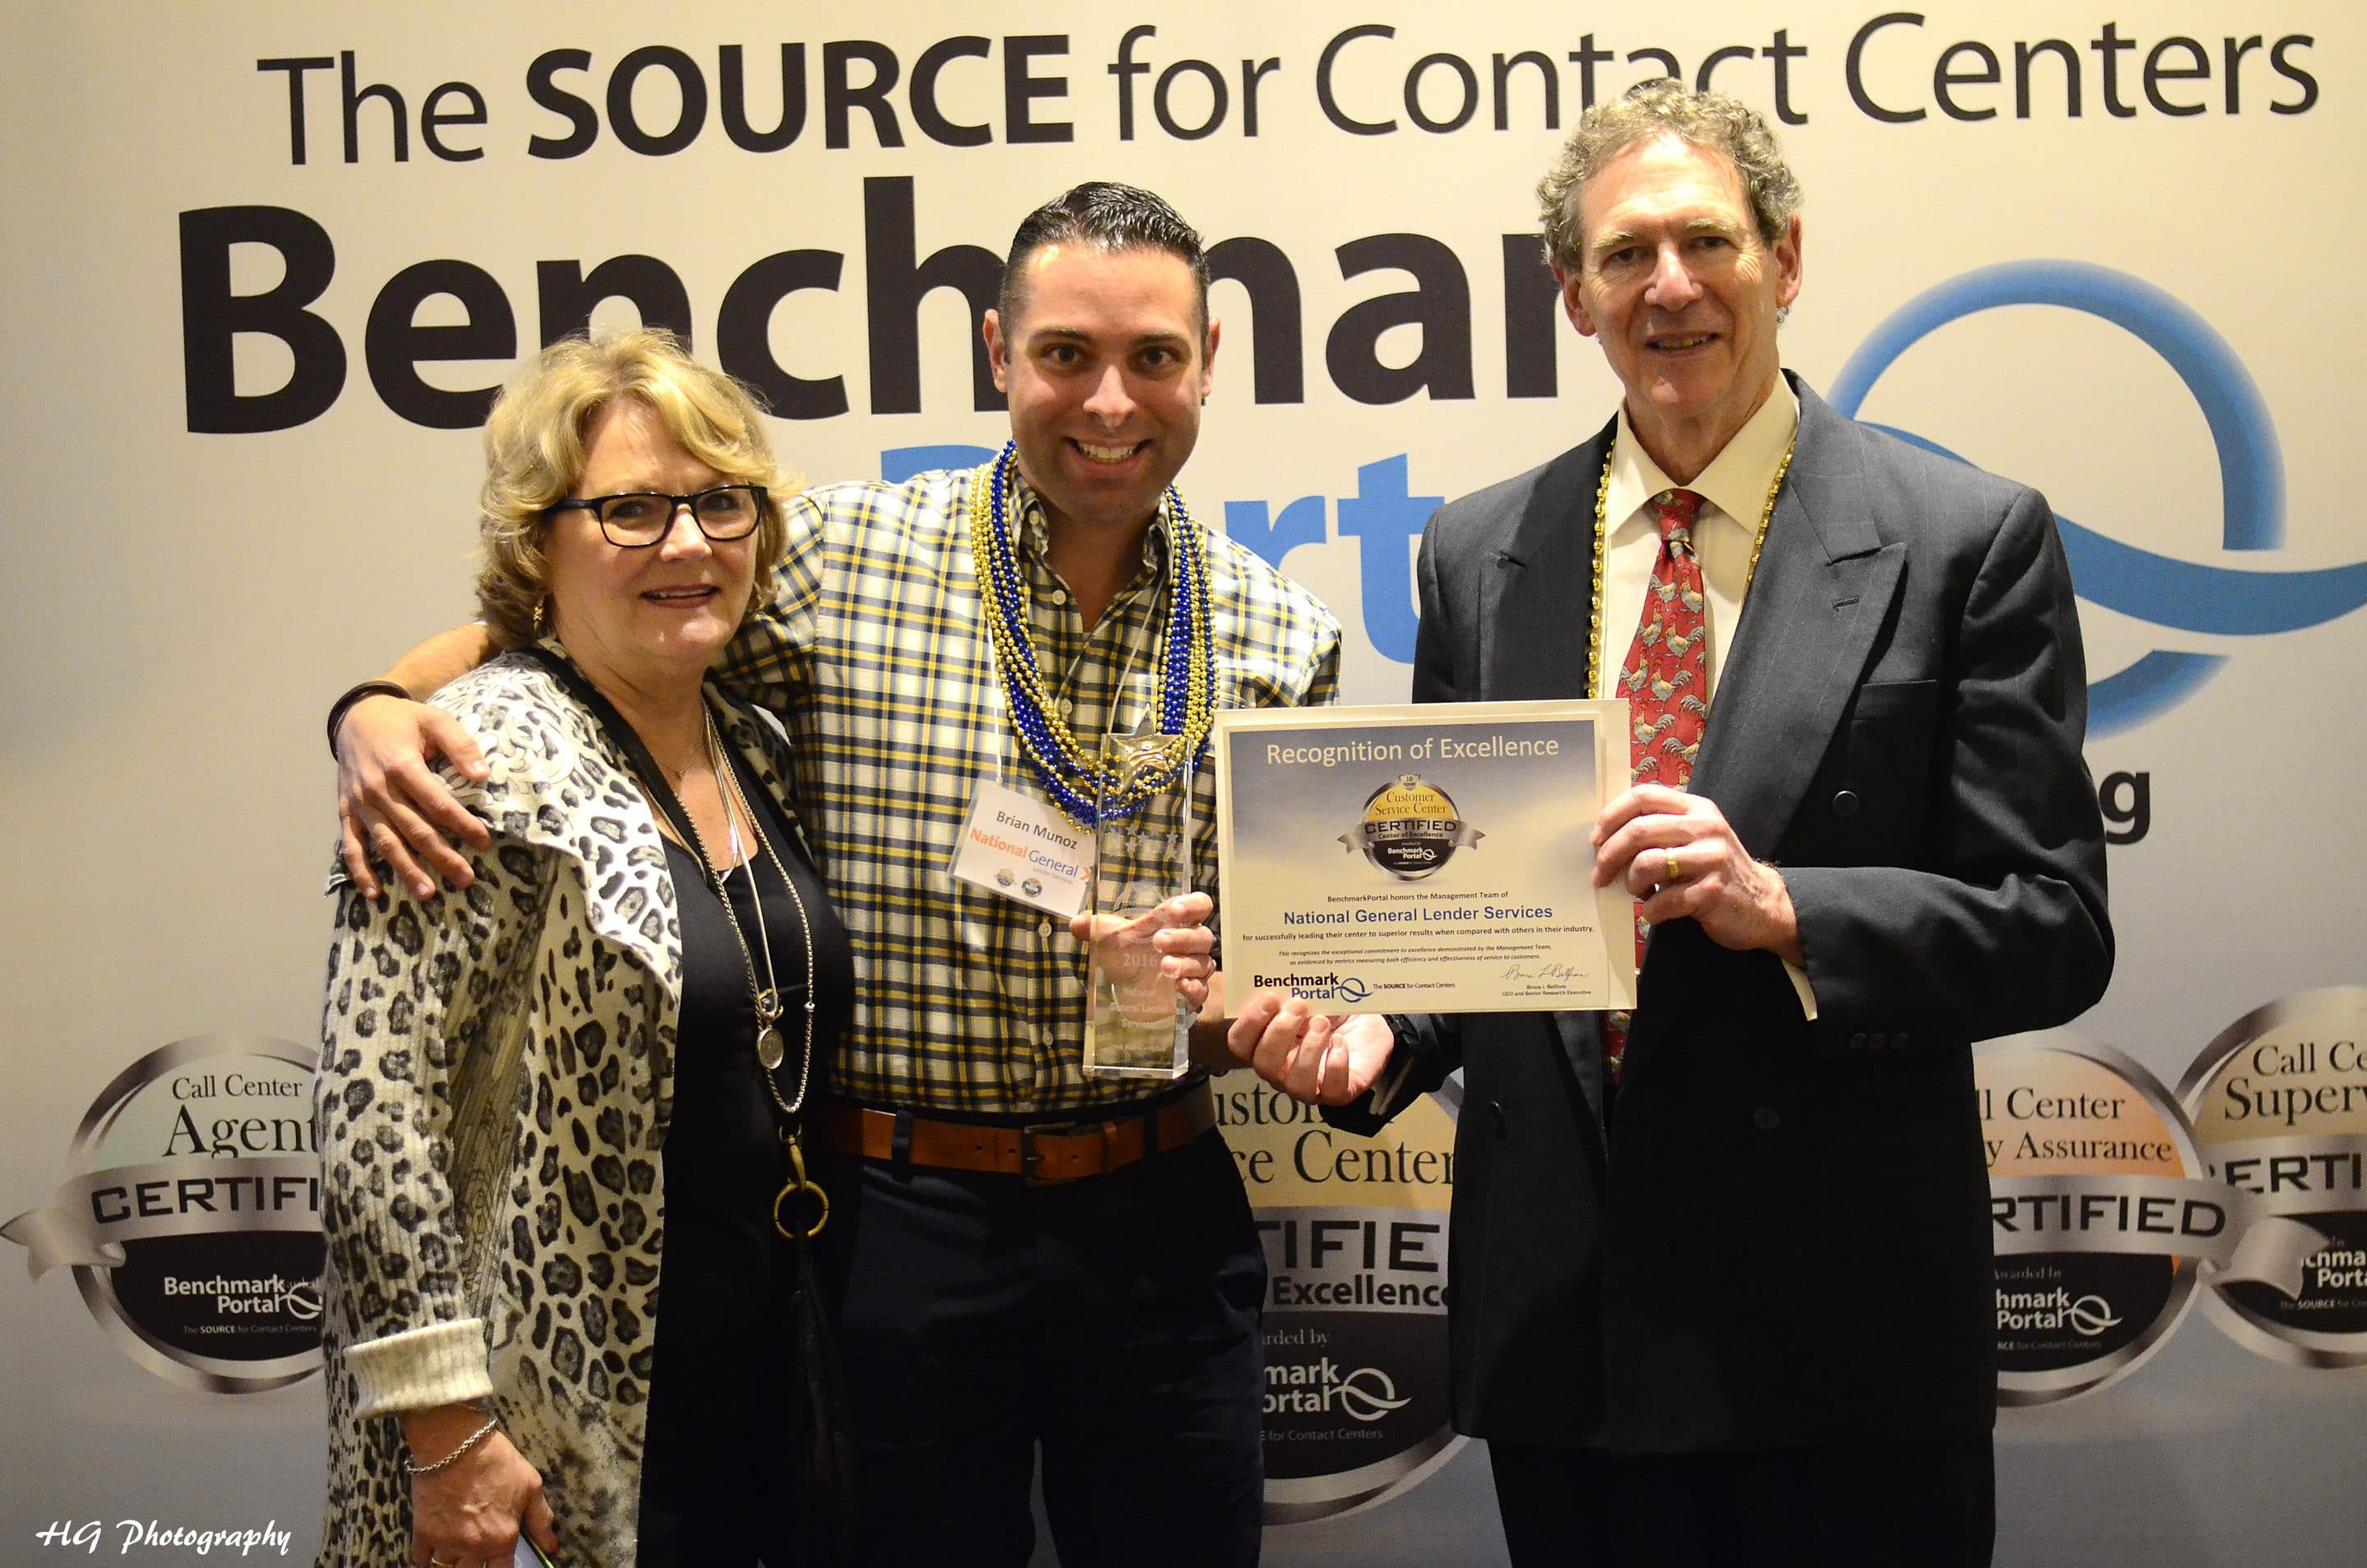 Top Contact Centers Contest Awards Ceremony